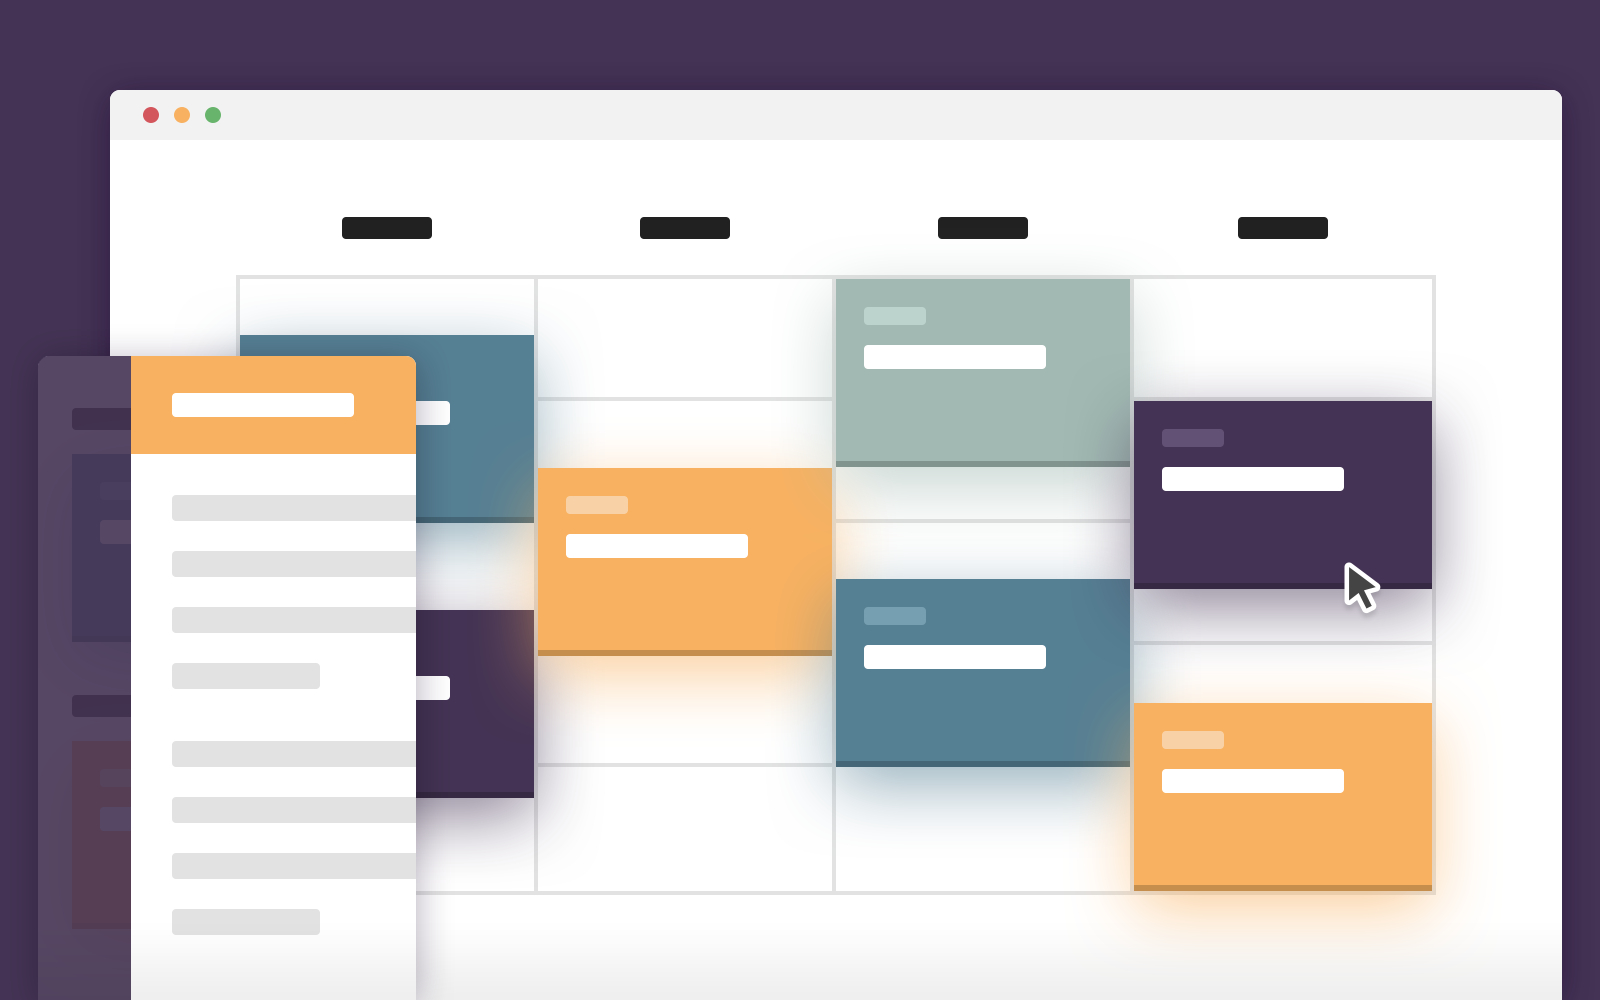 Schedule Template In Css And Javascript | Codyhouse inside Template For Weekly Football Games Week 1